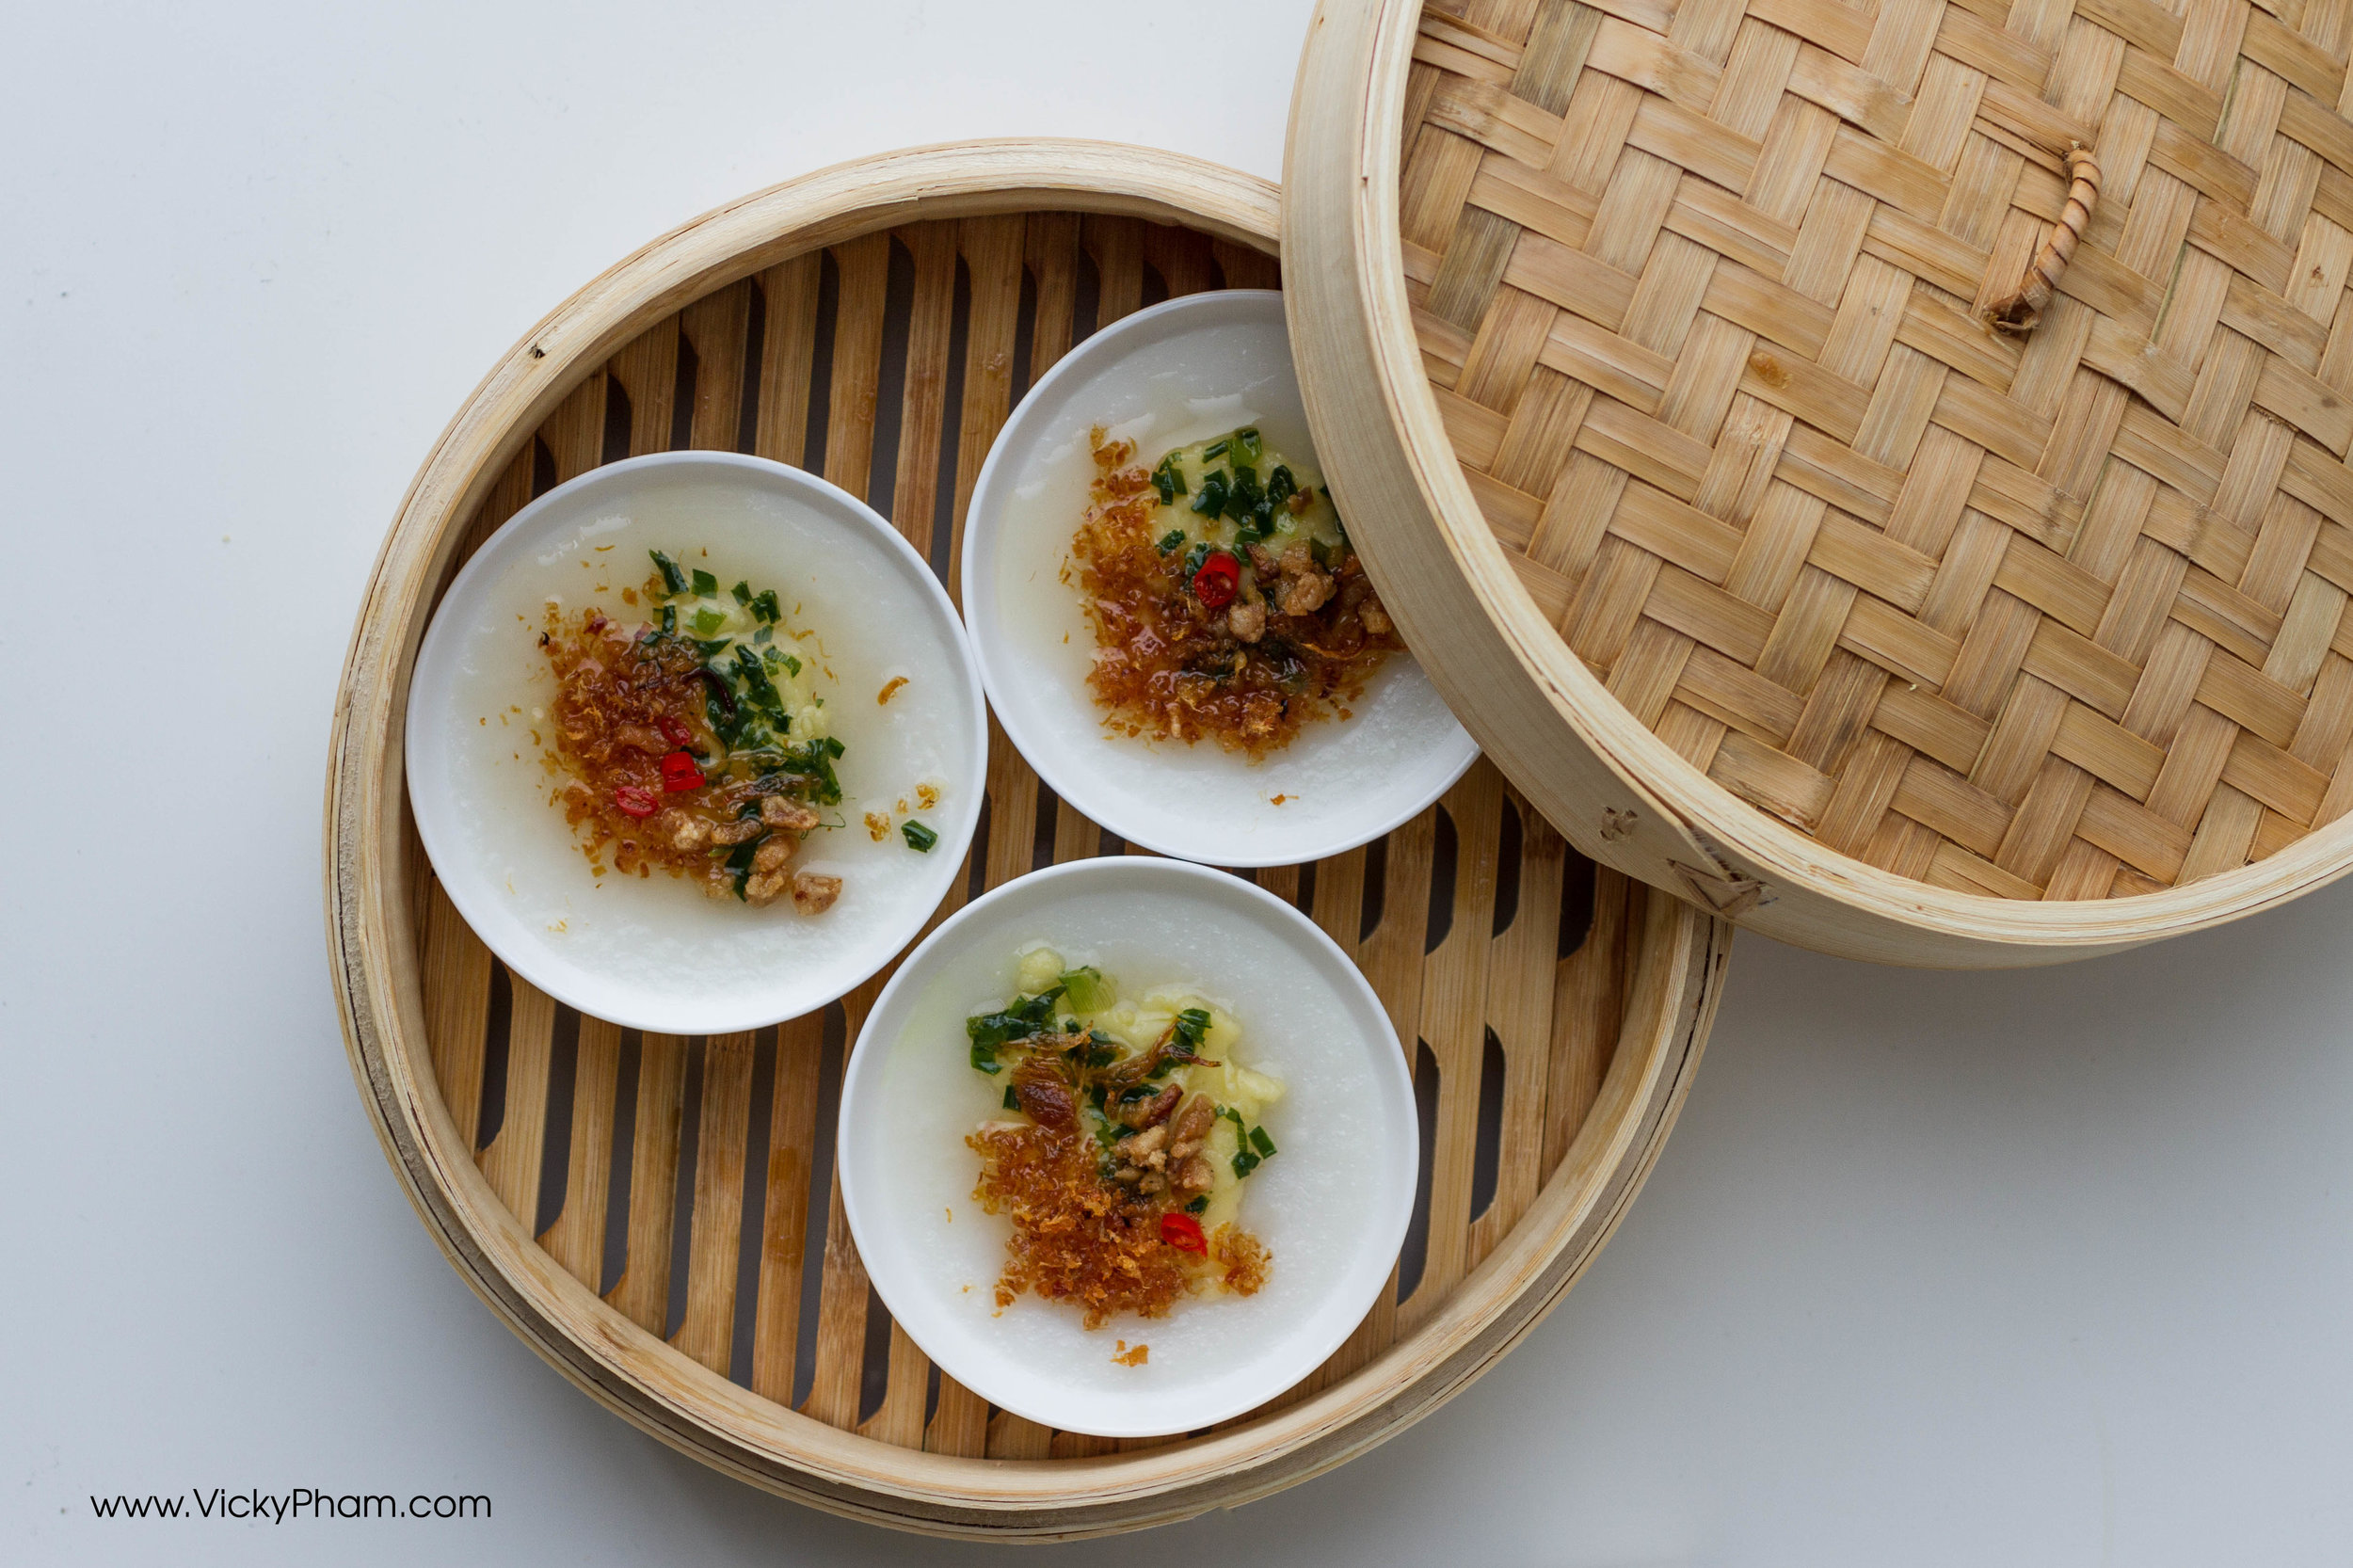 Banh Beo with mung bean paste, fried pork fat, dried shrimp, scallion oil, and sweet chili dipping sauce